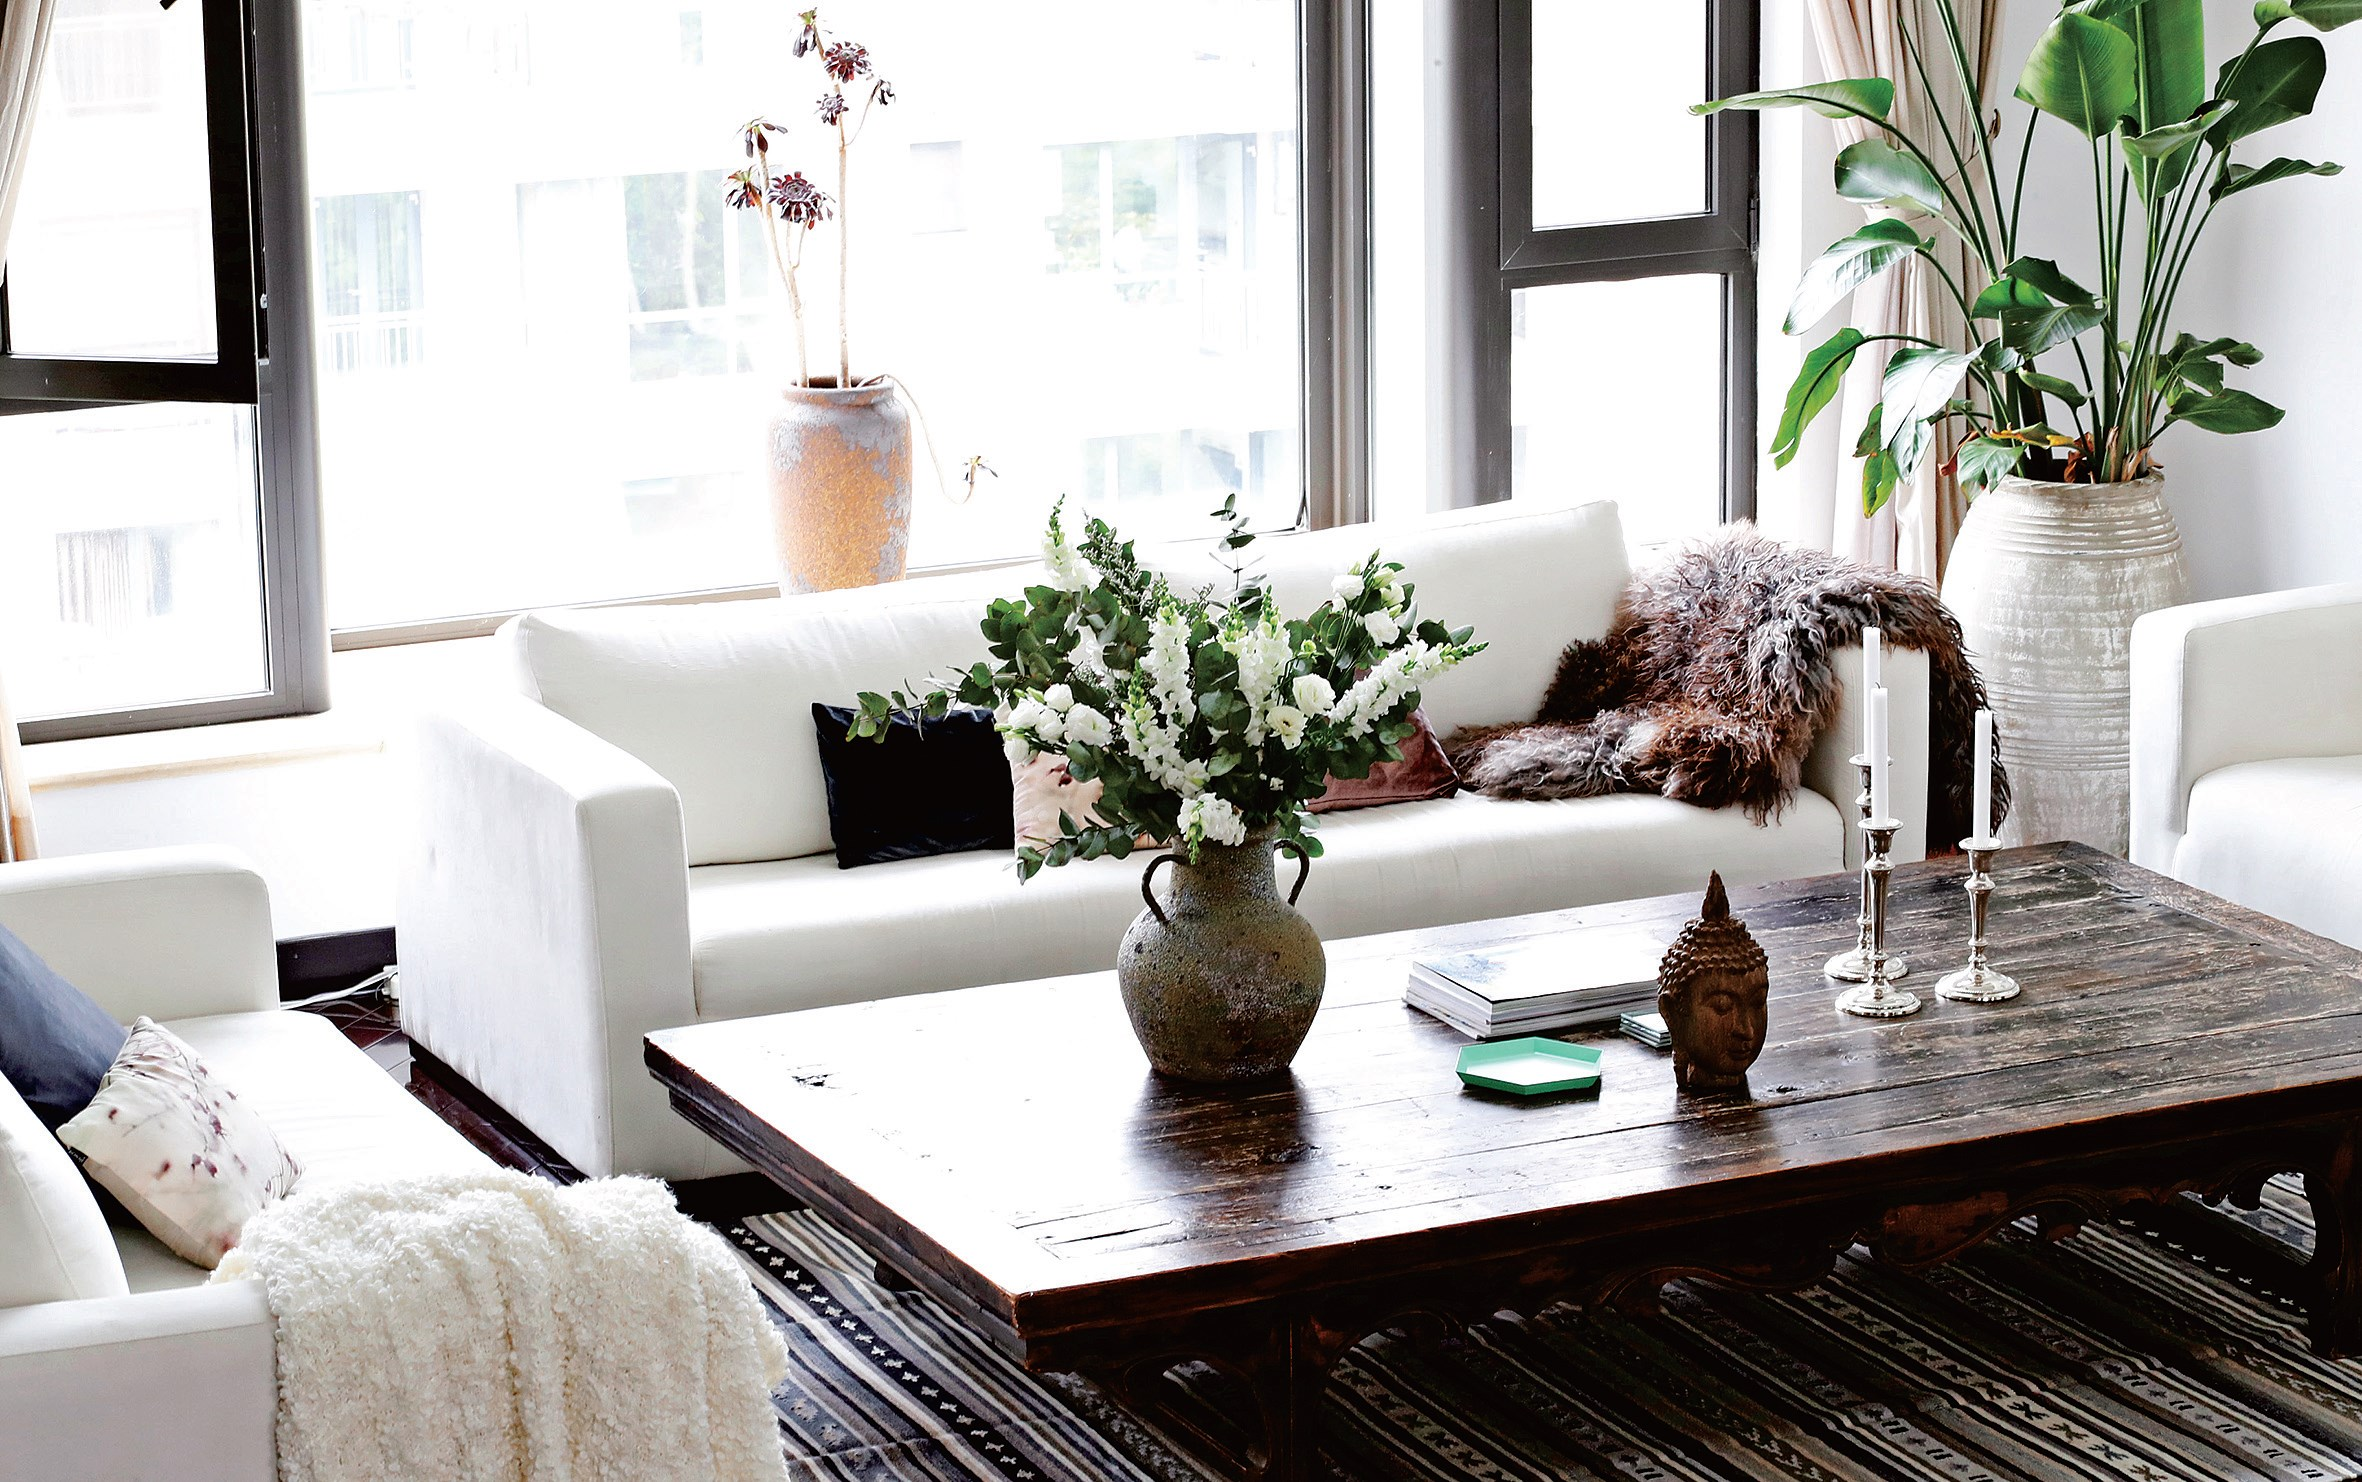 The interior style is a mix of Bohemian and Nordic, with a Chinese twist.